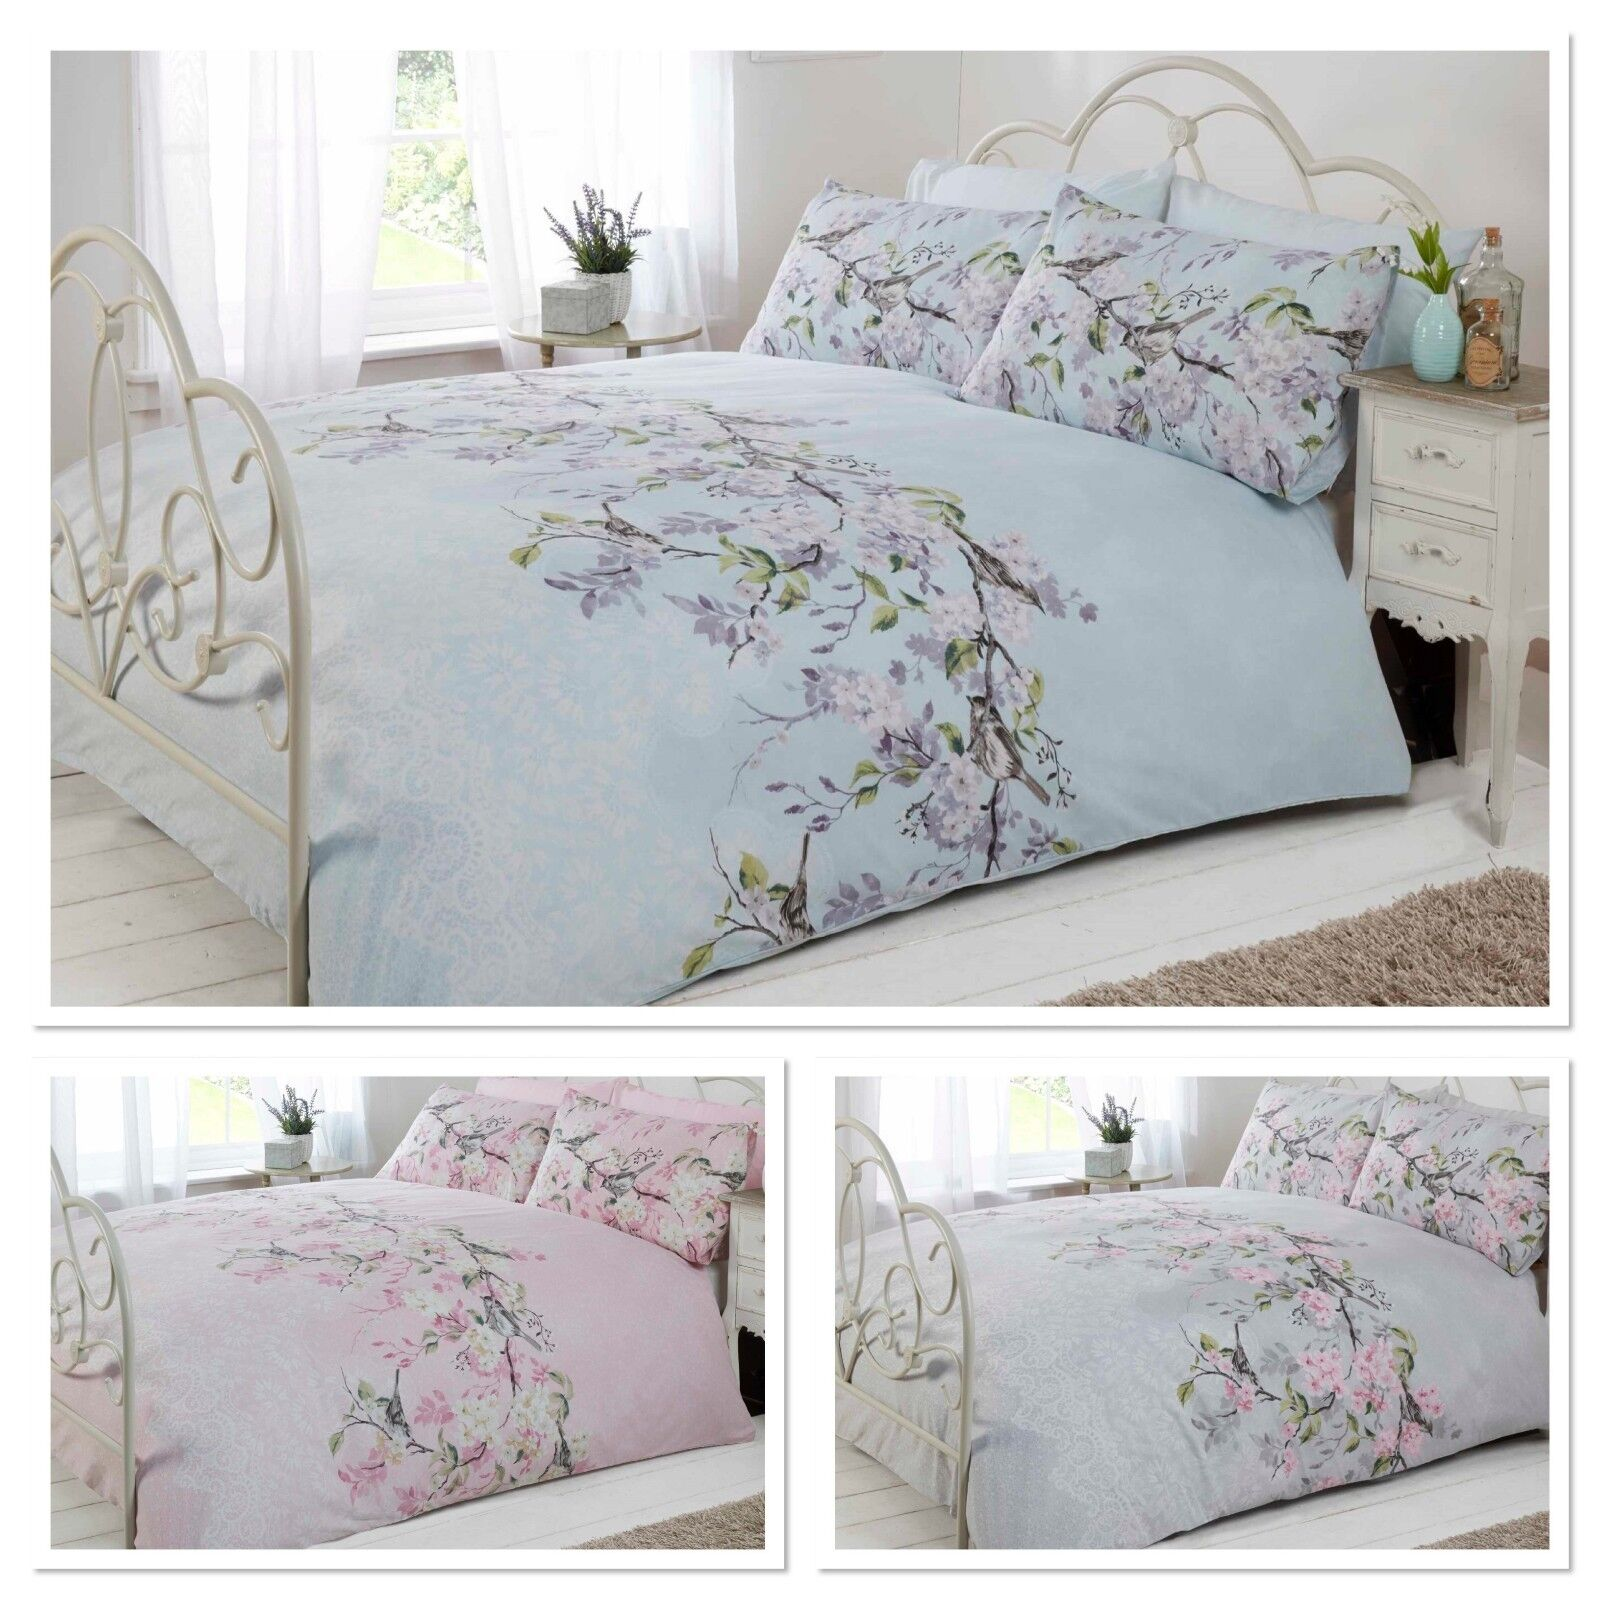 Stupendous Details About Rapport Eloise Vintage Floral Shabby Chic Duvet Cover Bedding Set 3 Colours Home Remodeling Inspirations Basidirectenergyitoicom